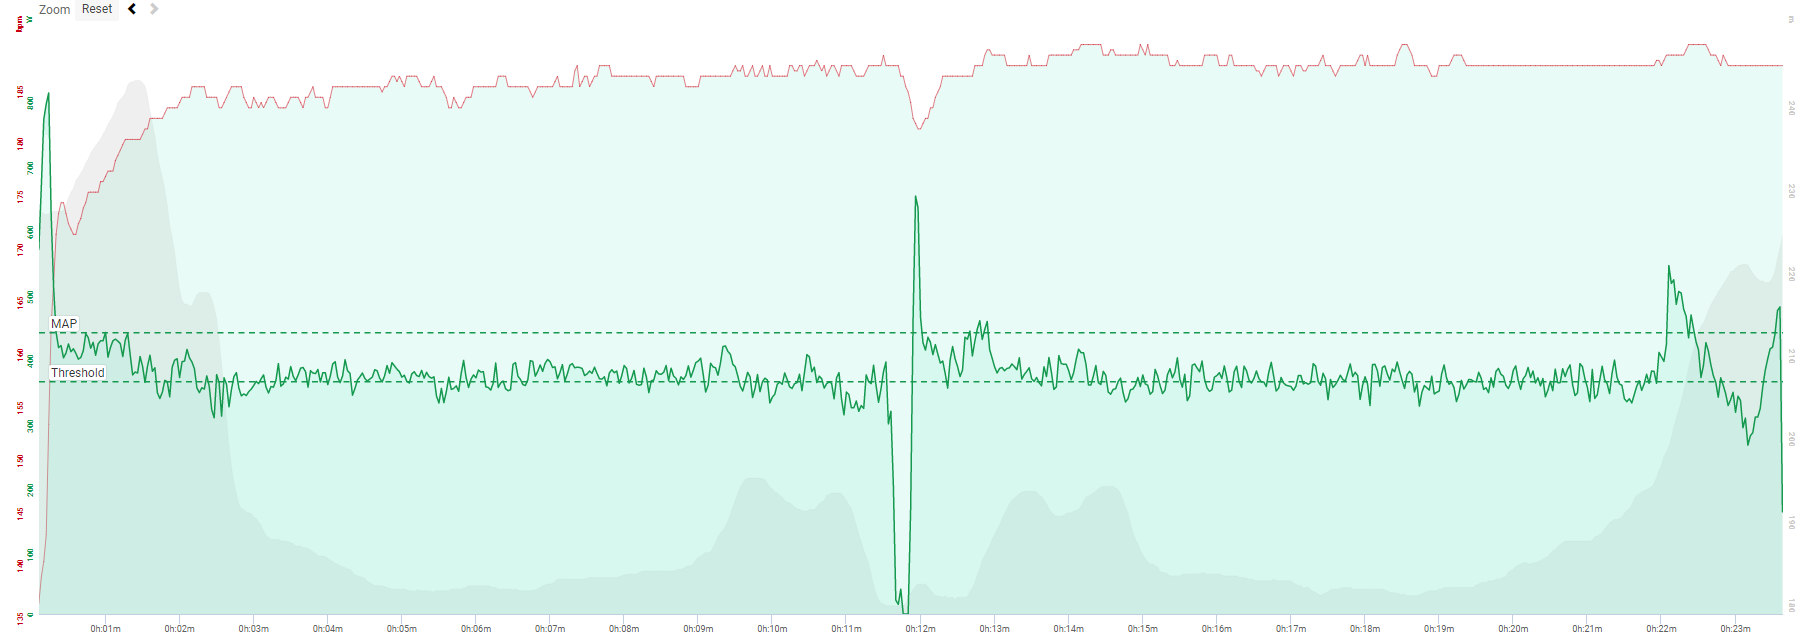 Wangaratta individual time trial, August 2017. Jordy recorded 371 Watts for a duration of 23:30.